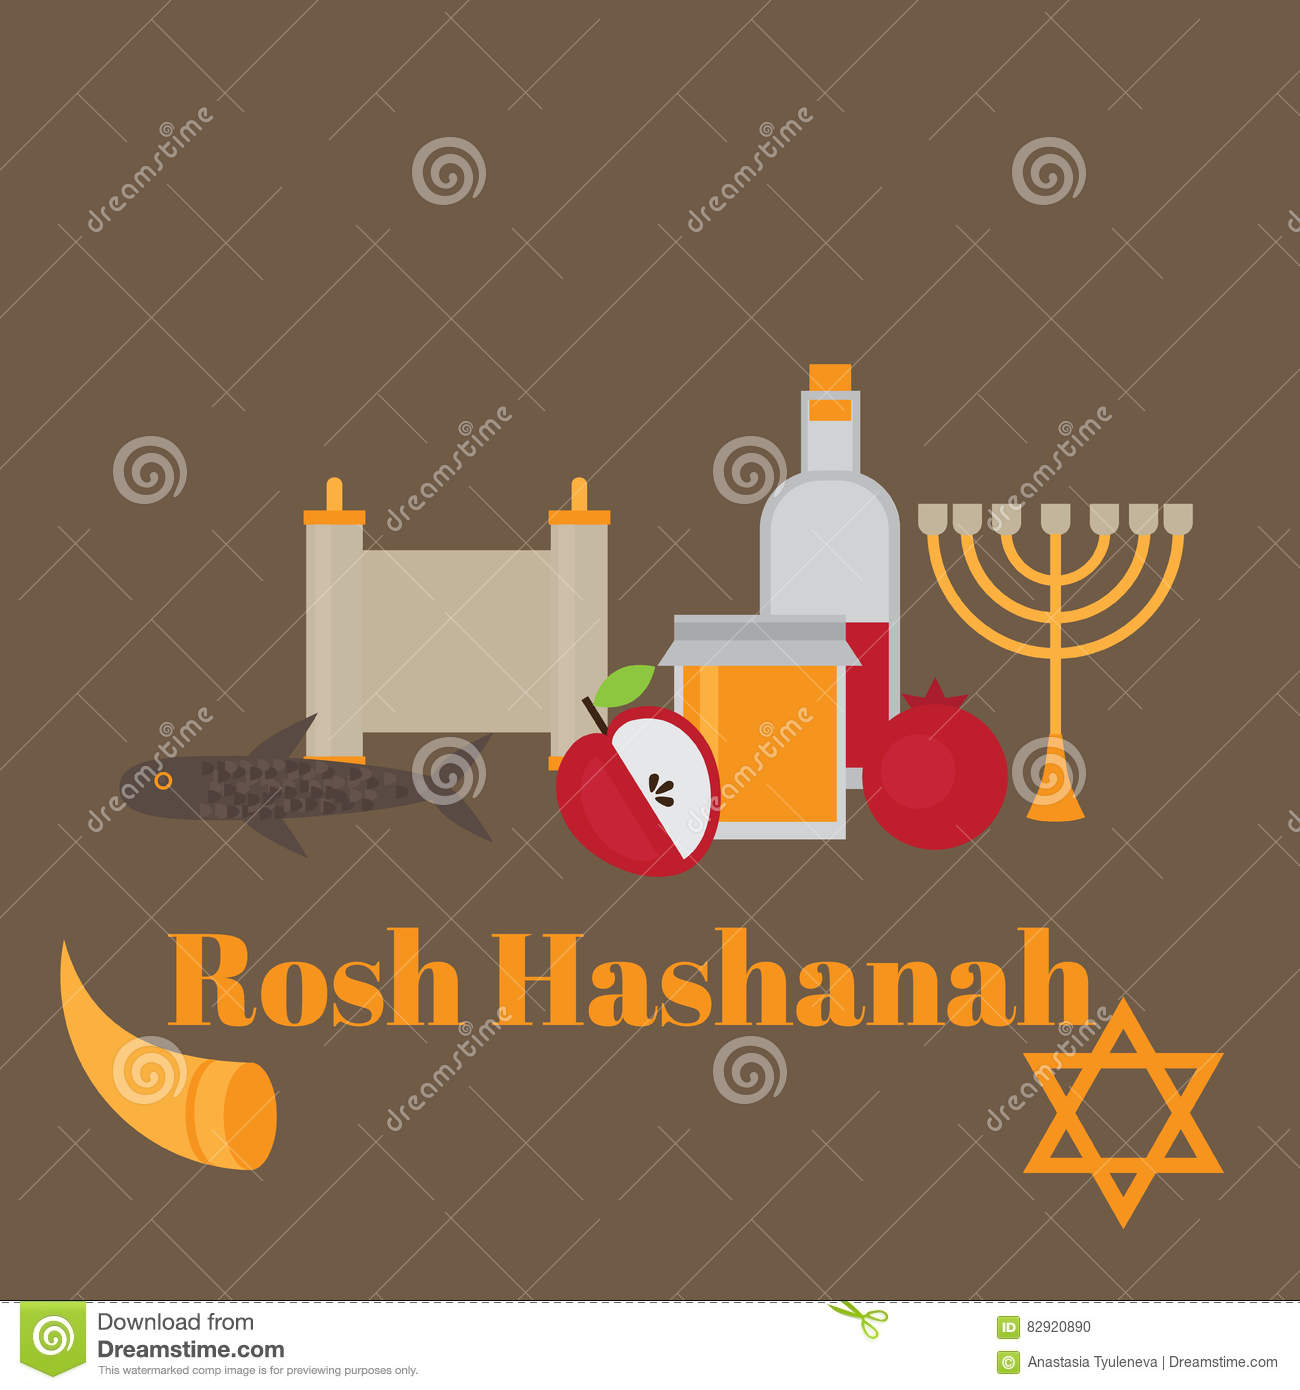 Rosh hashanah jewish new year greeting card hebrew symbols rosh hashanah jewish new year greeting card hebrew symbols judaism elements flat horn kristyandbryce Choice Image